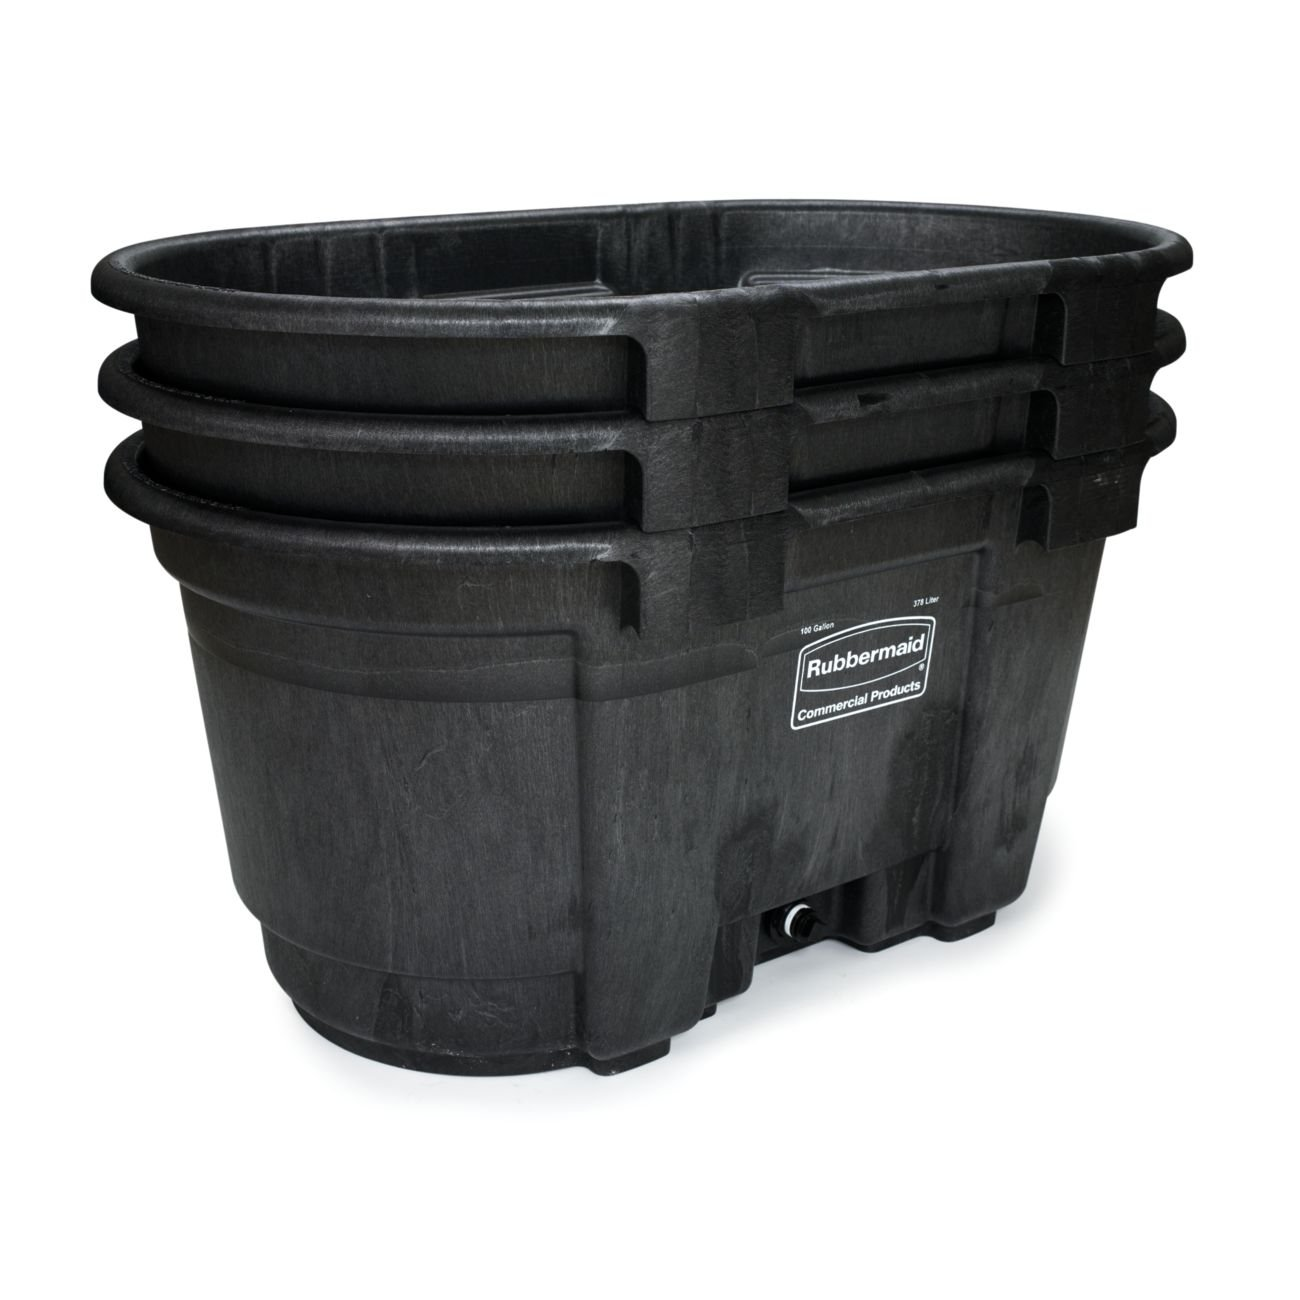 Rubbermaid Commercial FG424288BLA Structural Foam Stock Tank, 100 Gallon Capacity, 53'' Length x 25'' Height, Black by Rubbermaid Commercial Products (Image #1)